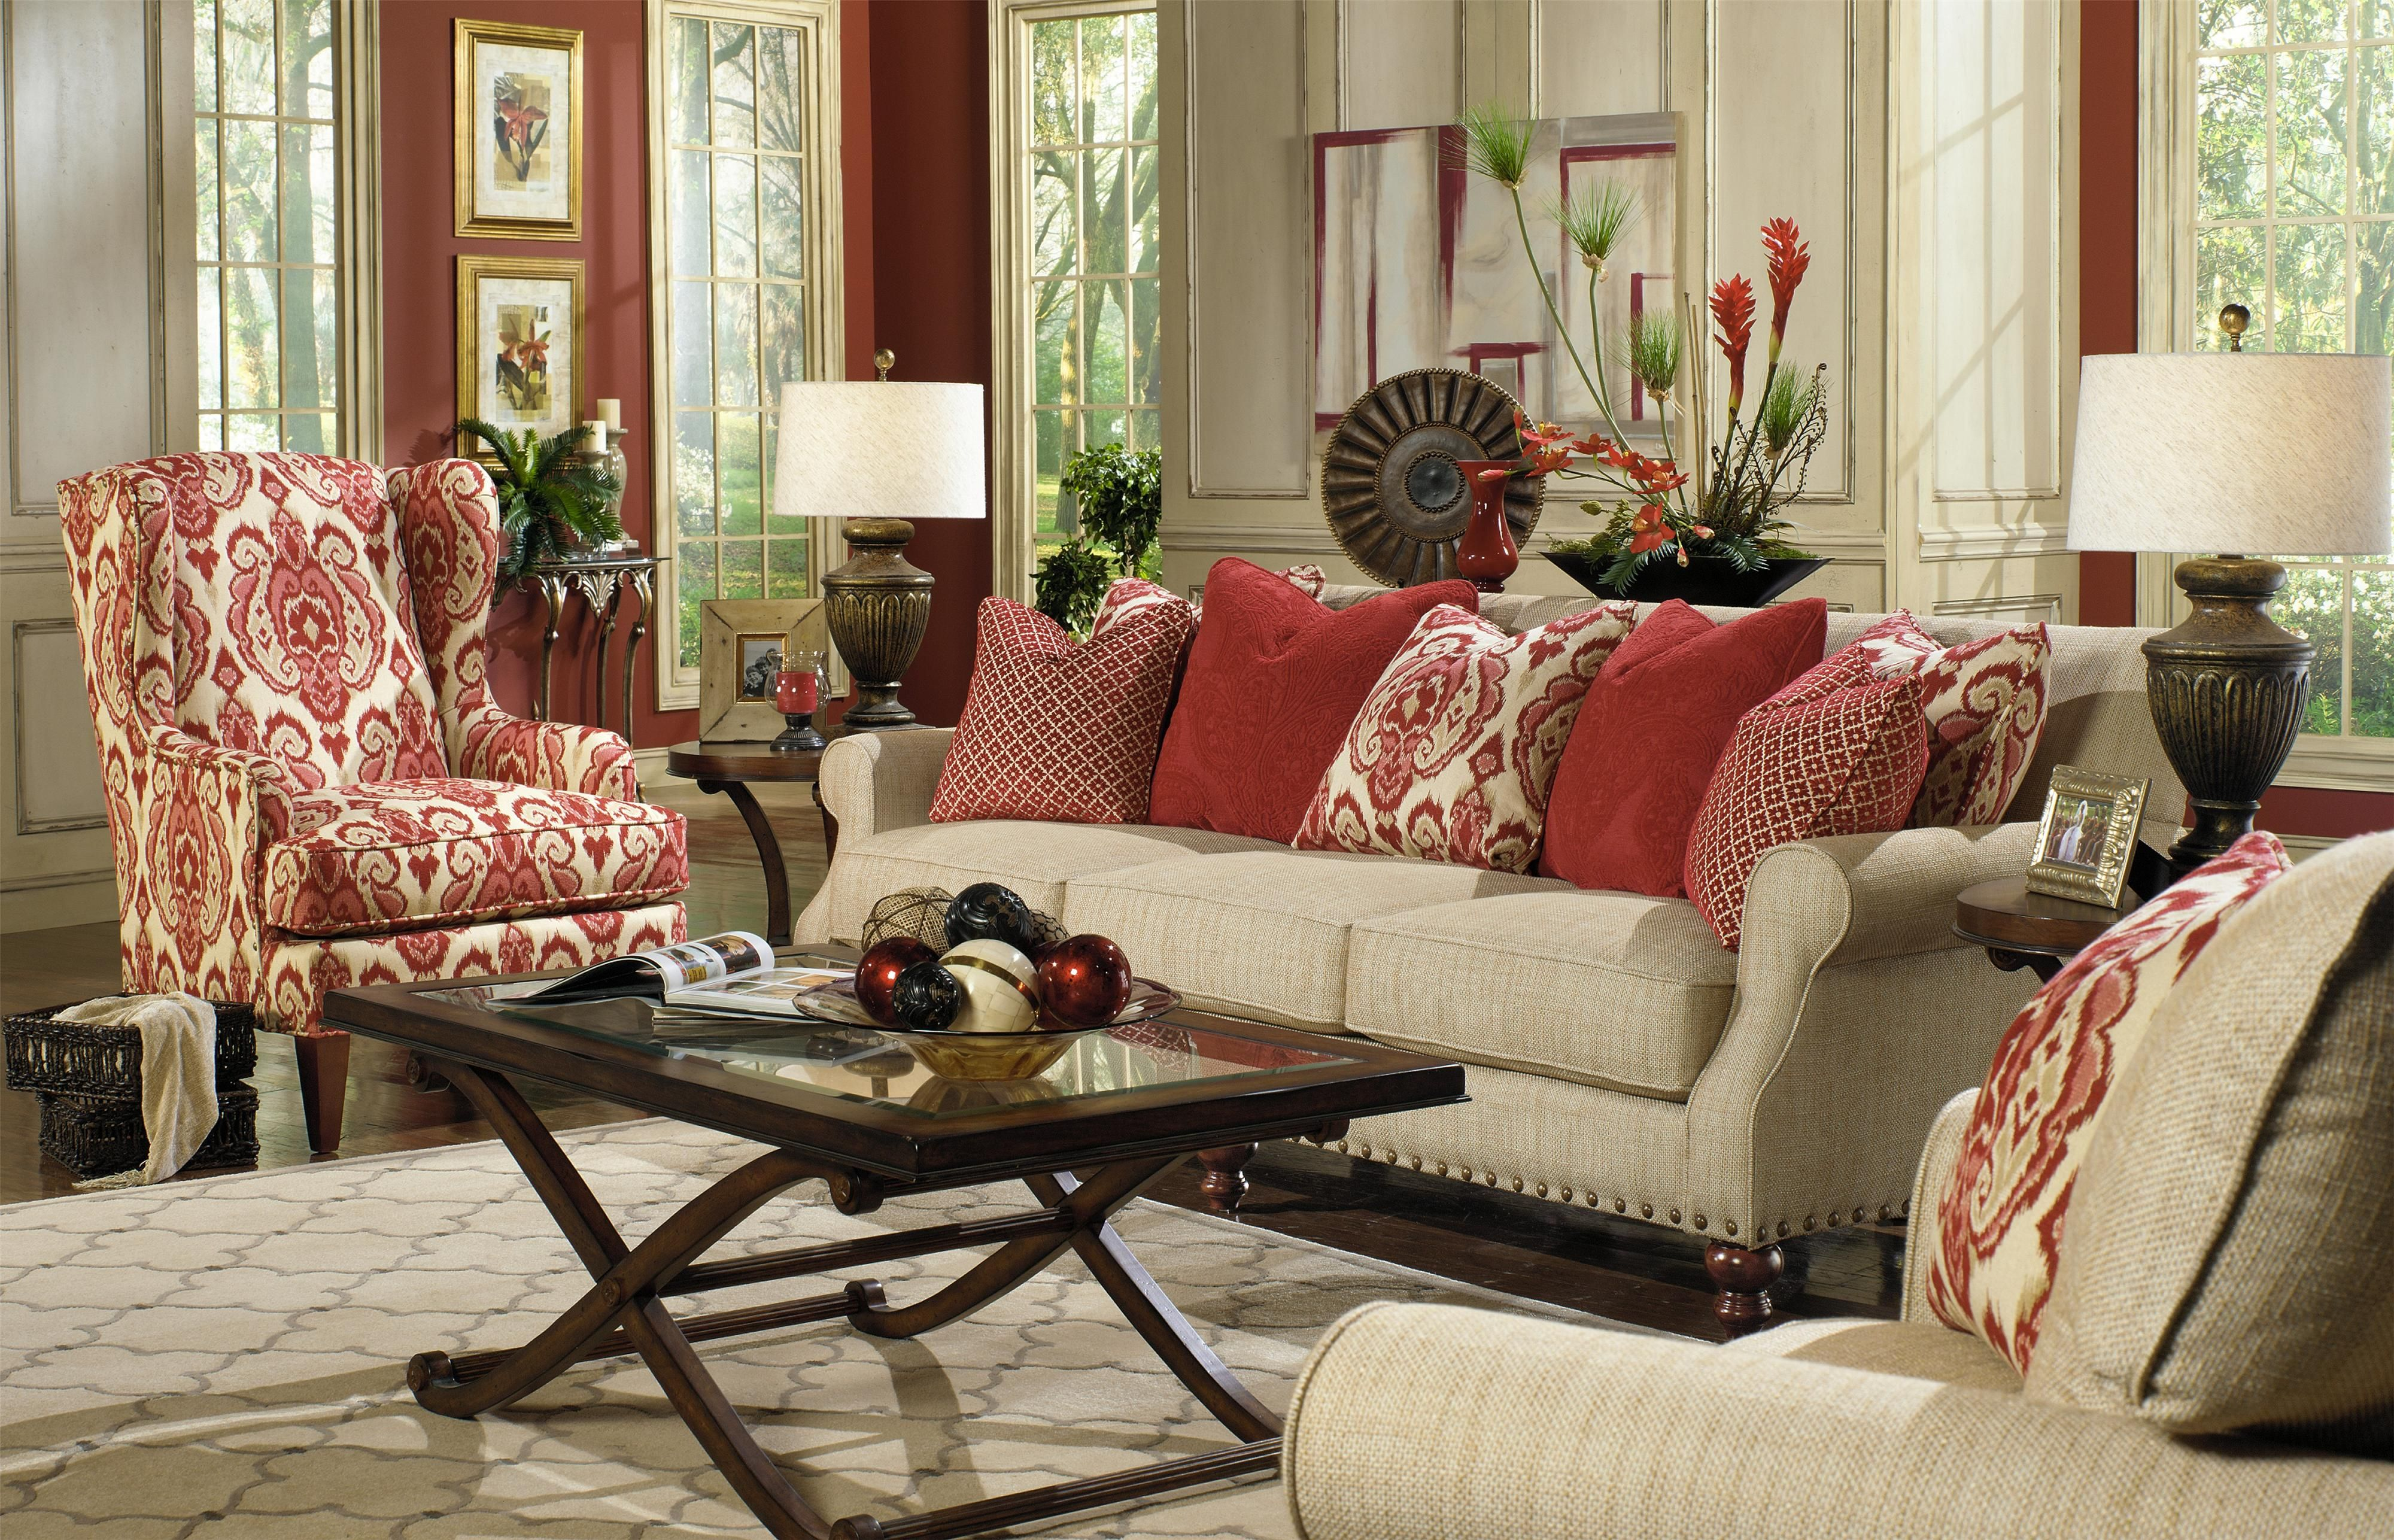 reeds furniture couch with red pillows